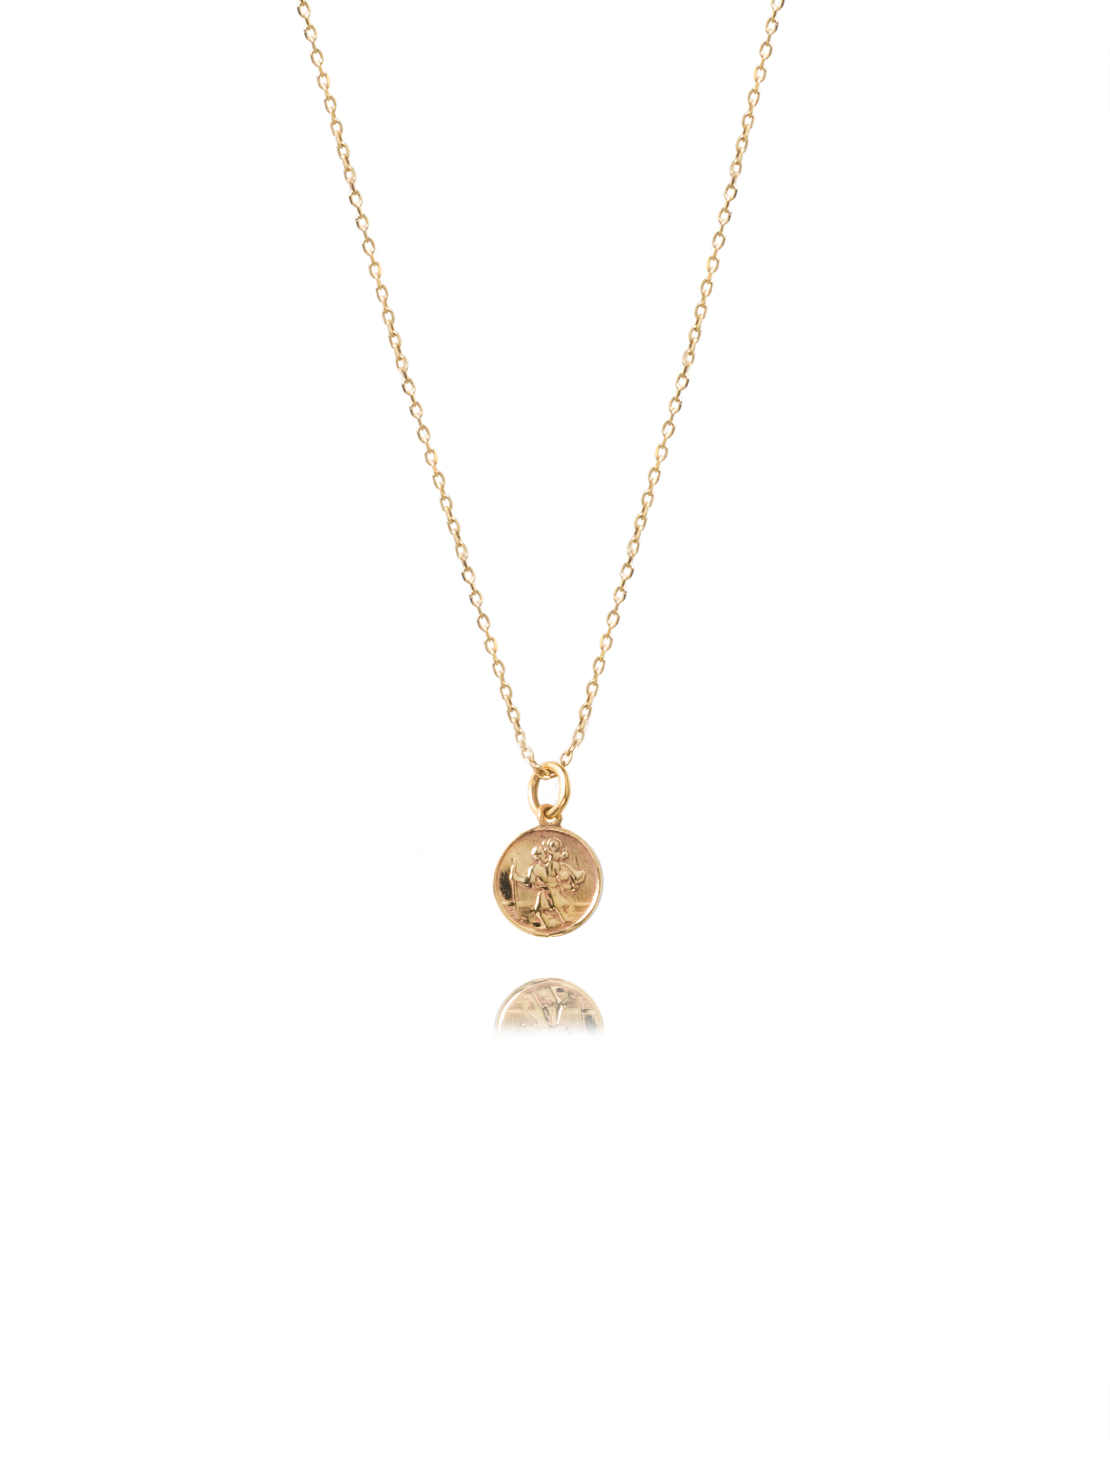 d6064bcca80 Small Gold St Christopher Necklace - Tilly Sveaas Jewellery